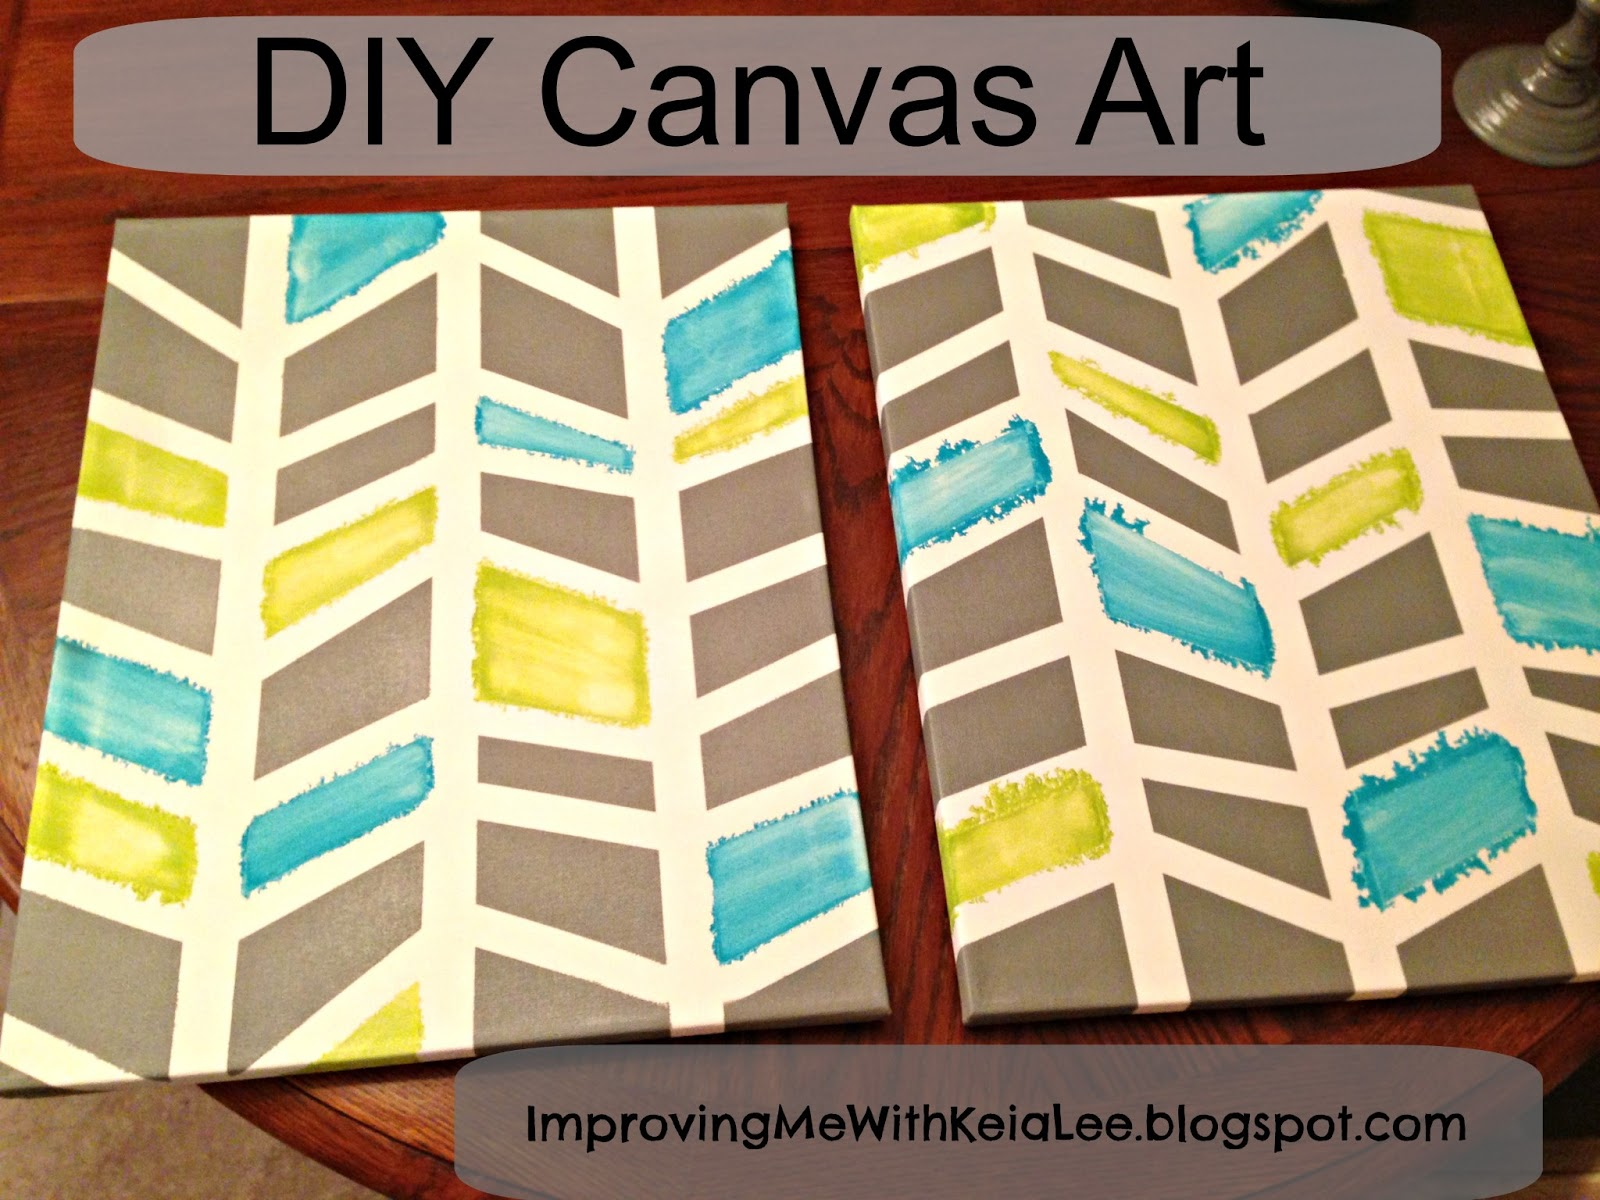 Improving me diy canvas art project for Diy art projects canvas